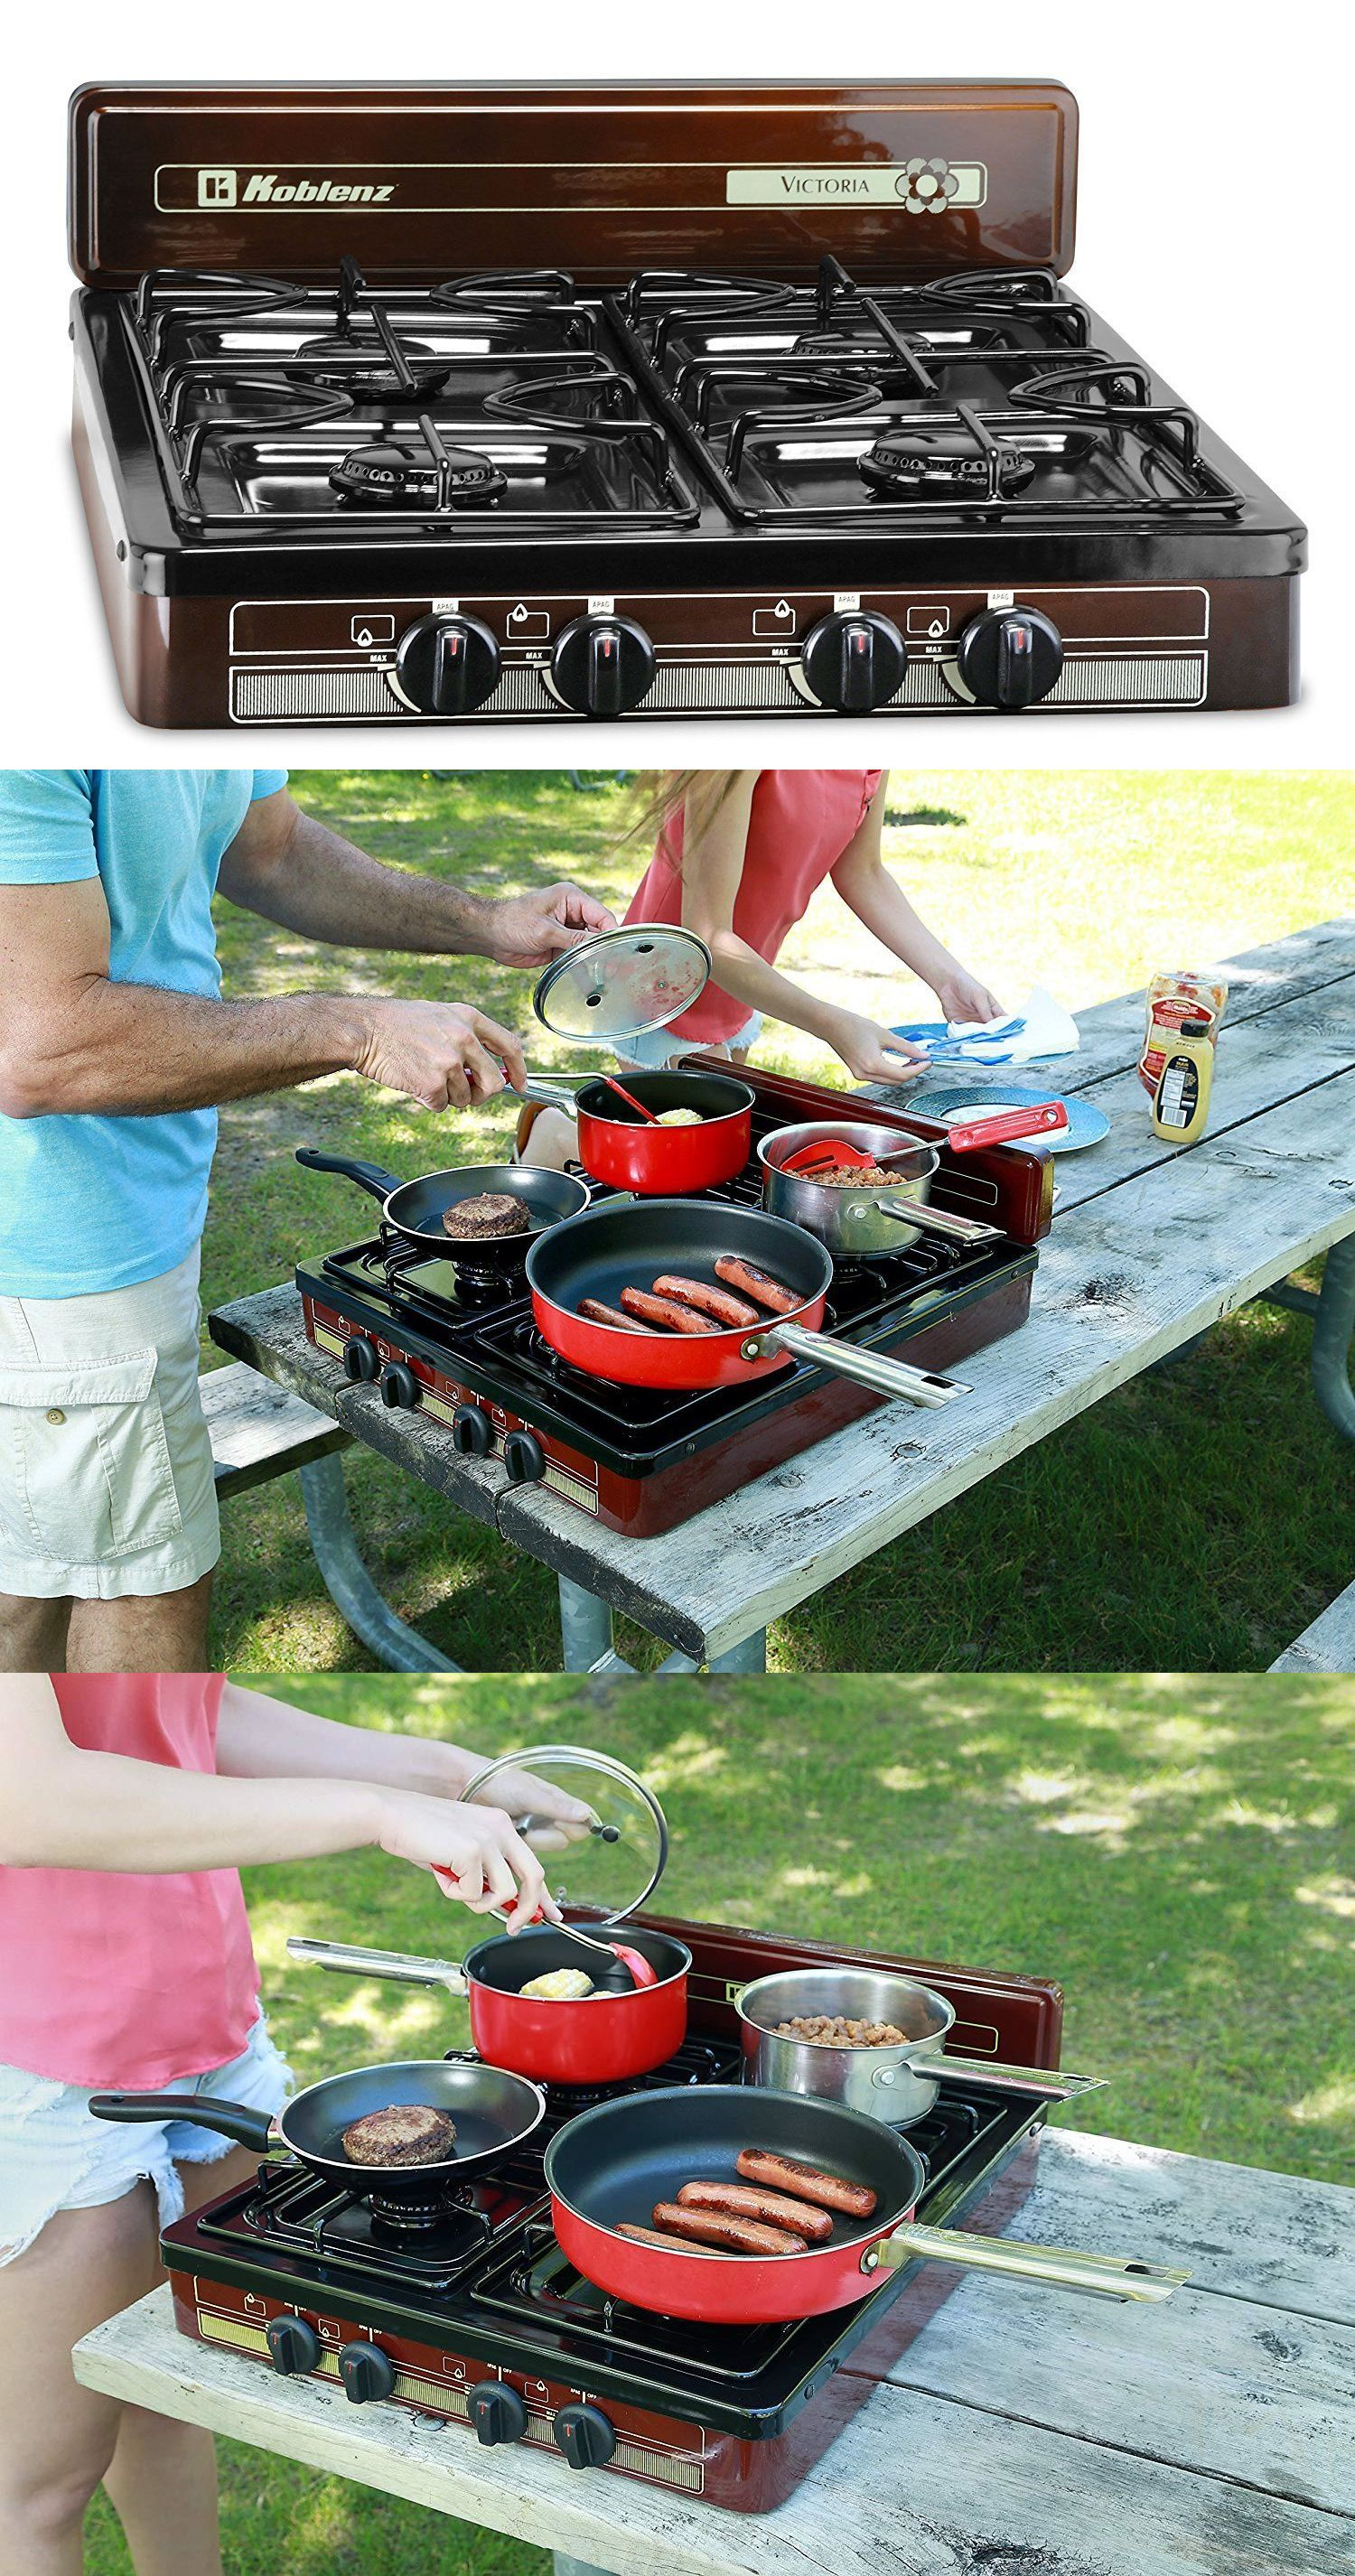 Camping Stoves 181386 4 Burner Portable Stove Tabletop Cooking Propane Gas Outdoor Camping Griddle New Bu Camping Griddle Portable Stove Portable Gas Stove